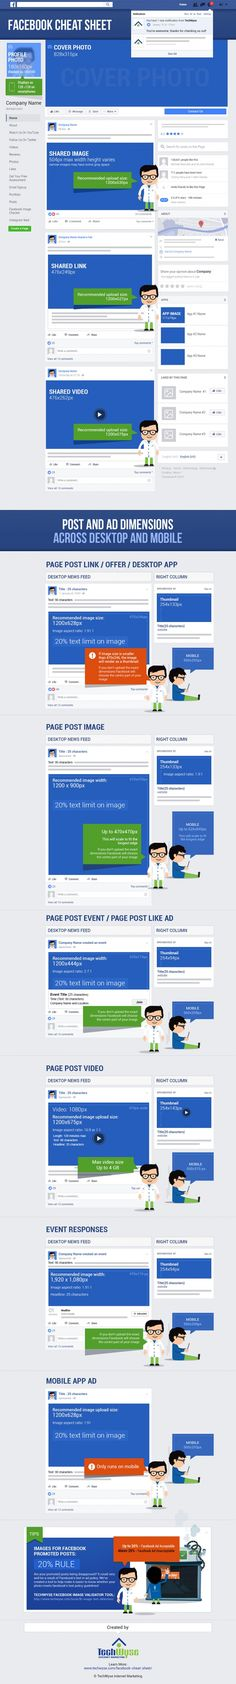 The Amazing Facebook Image Sizes & Dimensions Cheat sheet #Infographics